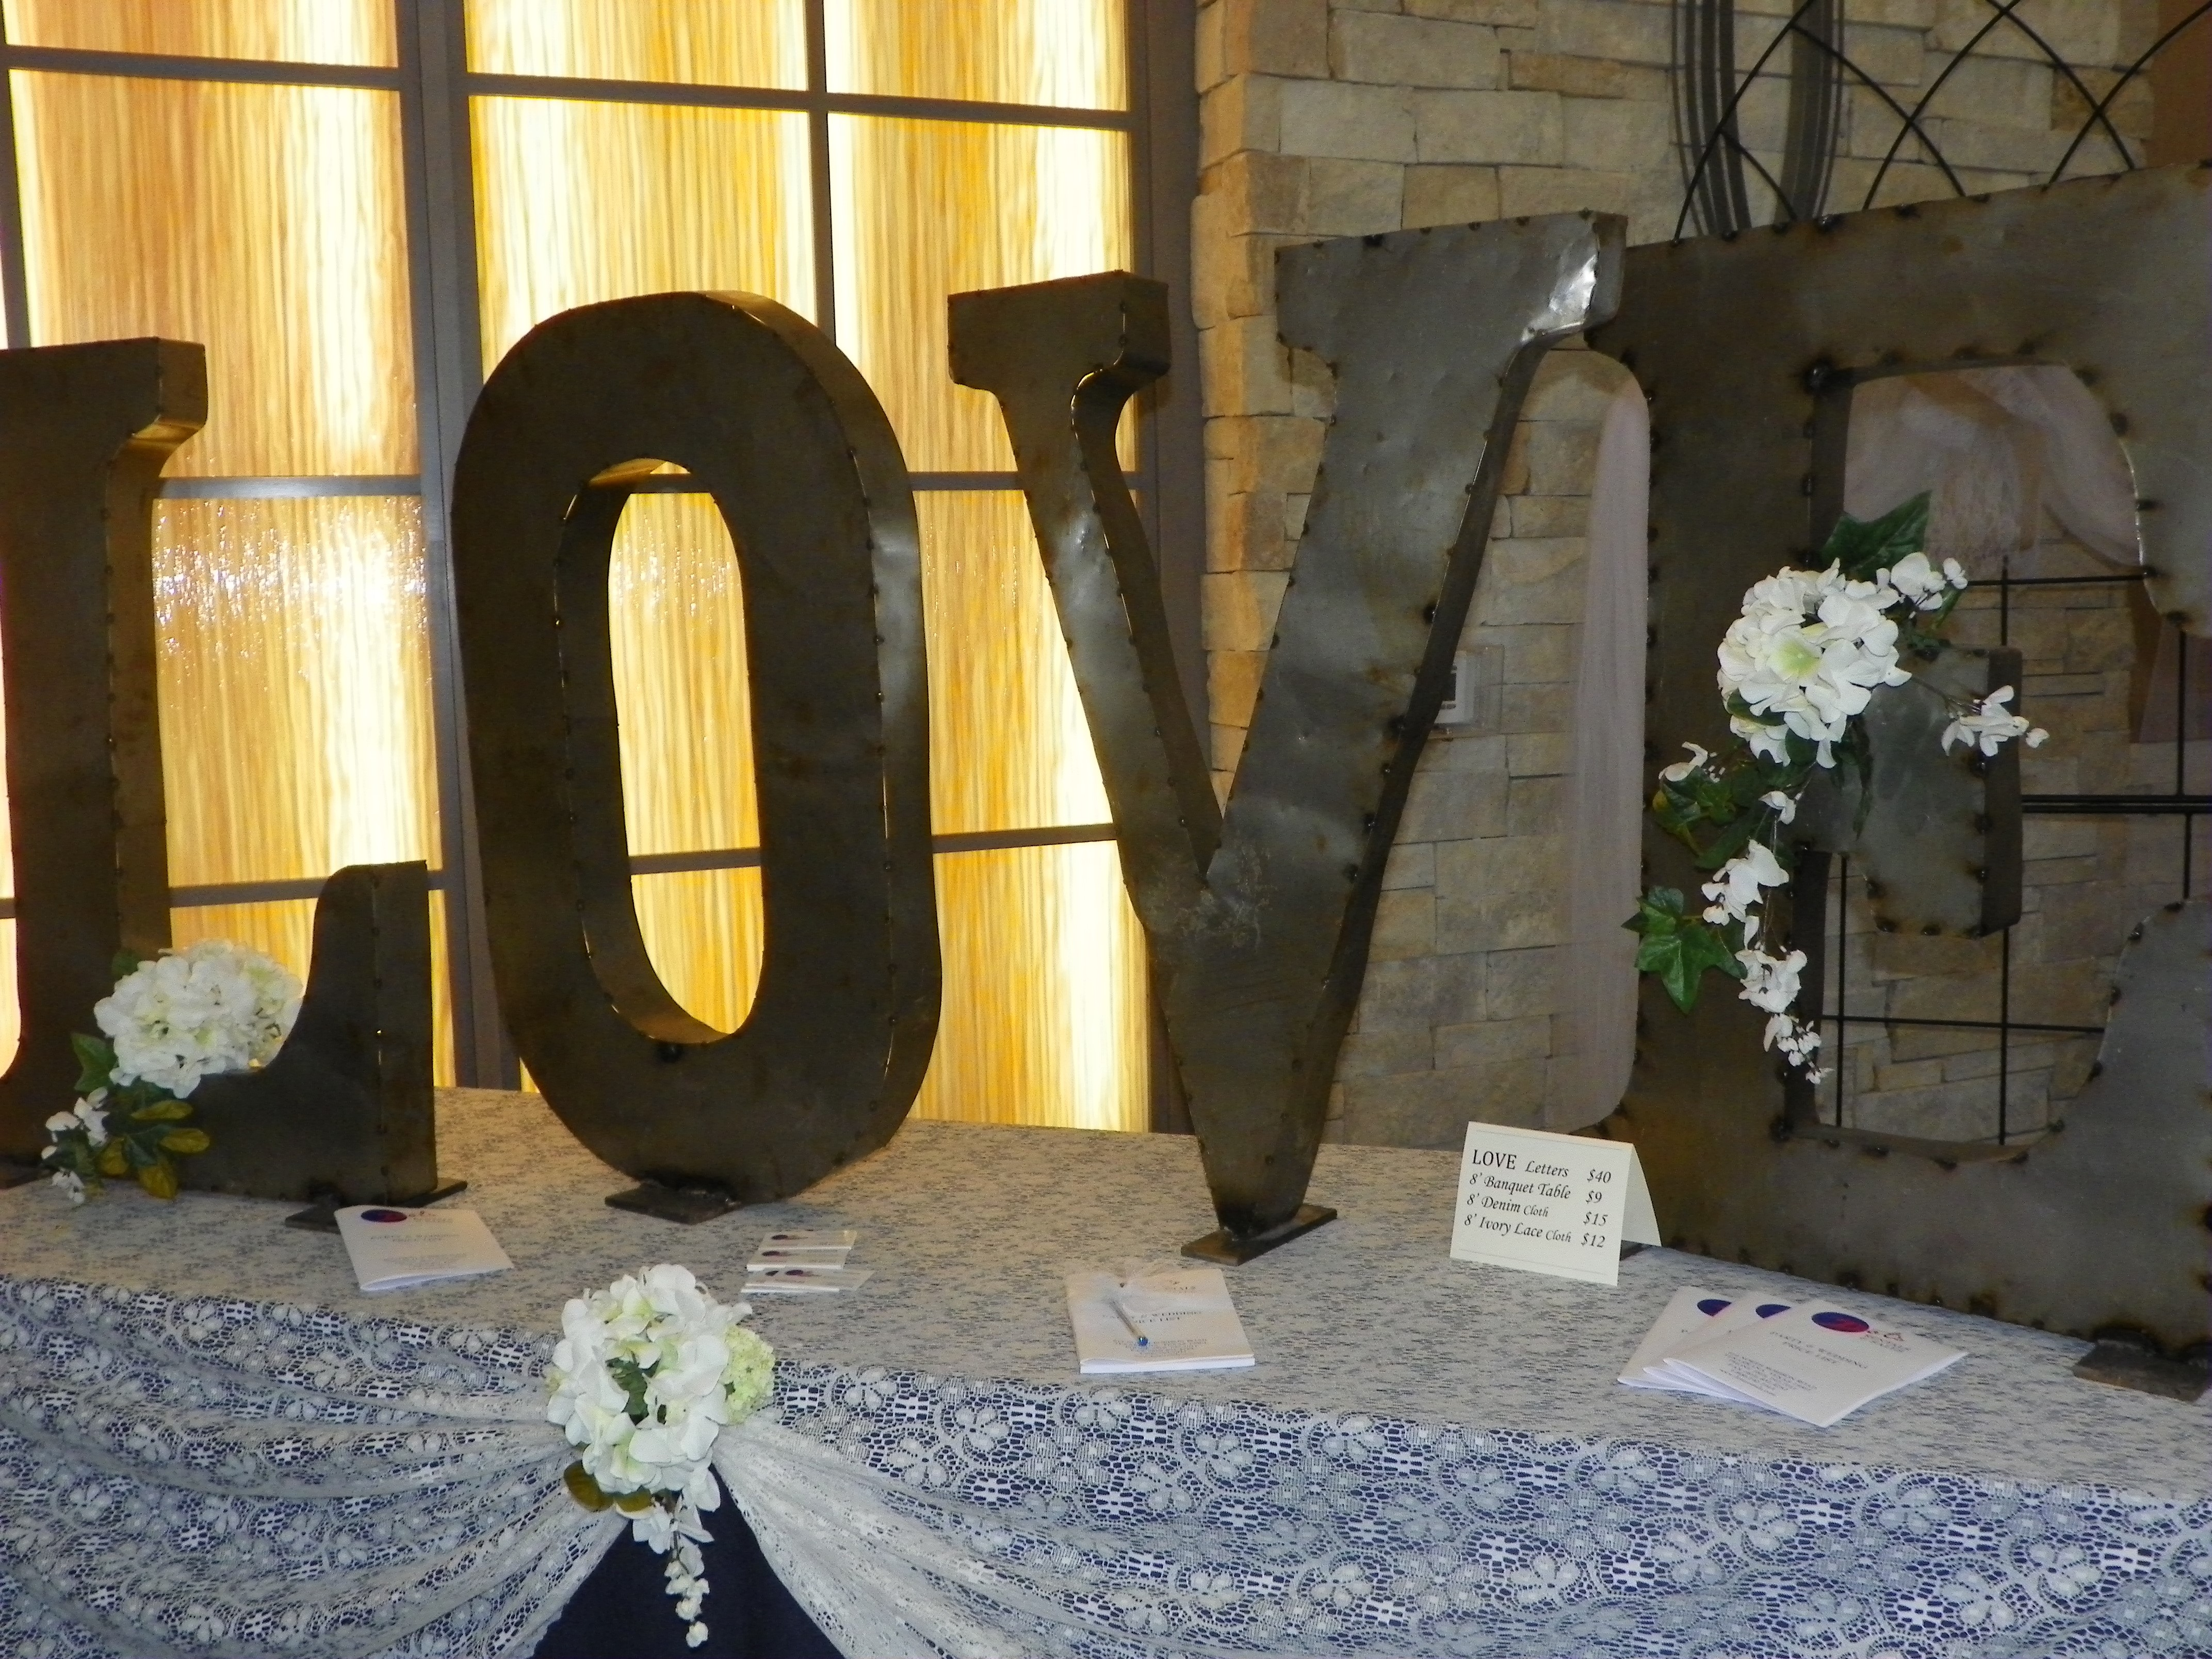 LOVE 3' letters $40